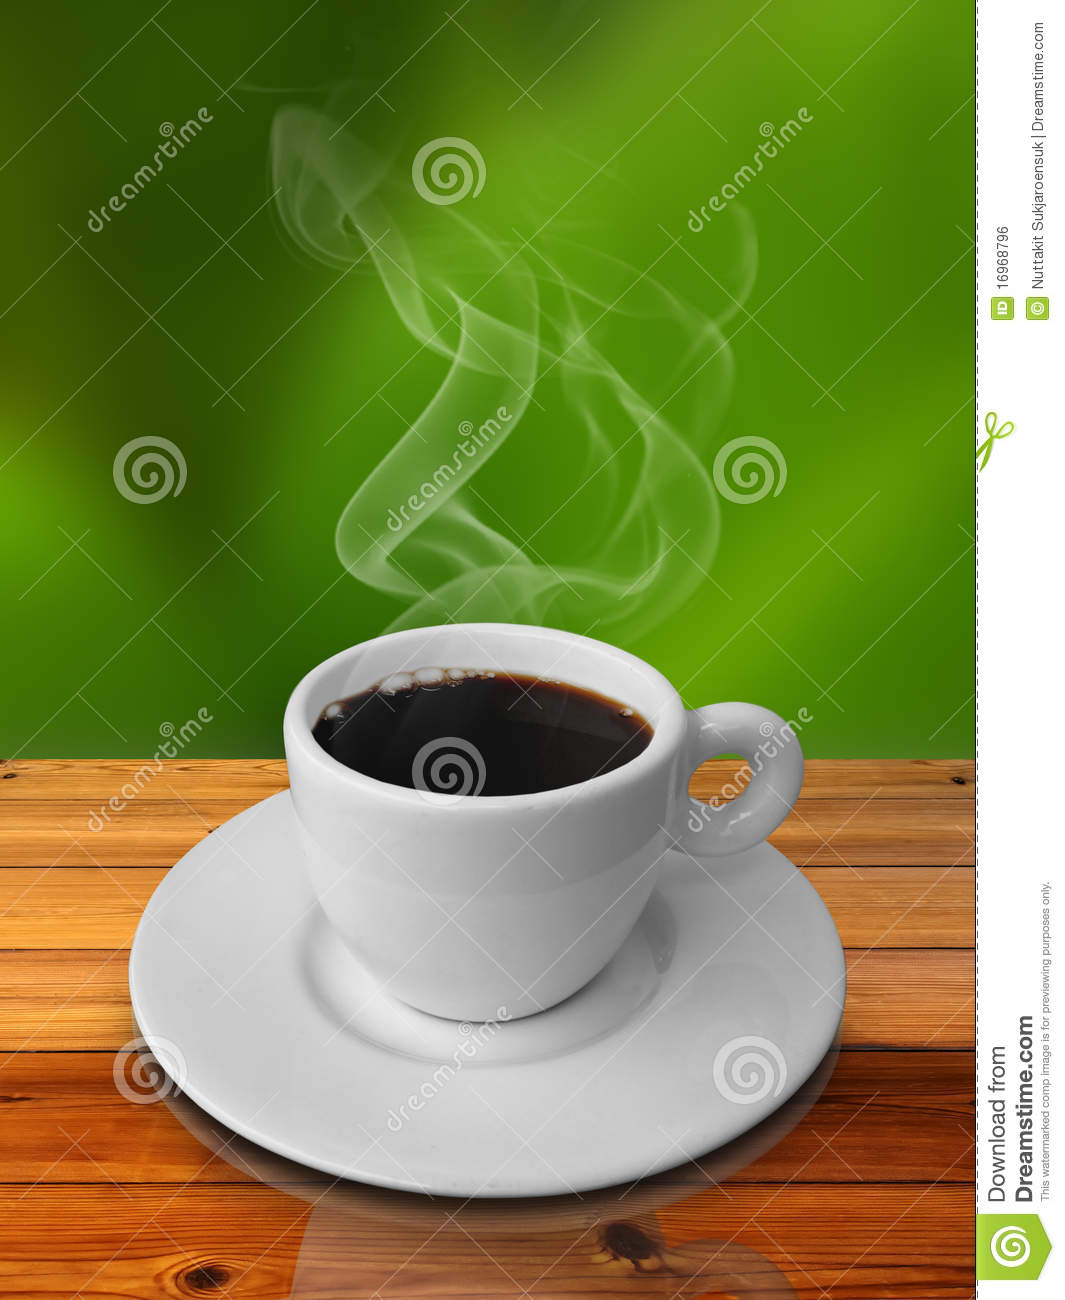 Wood Table Top On Blurred Beach Background Vintage Tone: Hot Cappuccino In Green Coffee Cup On Wood Table Royalty